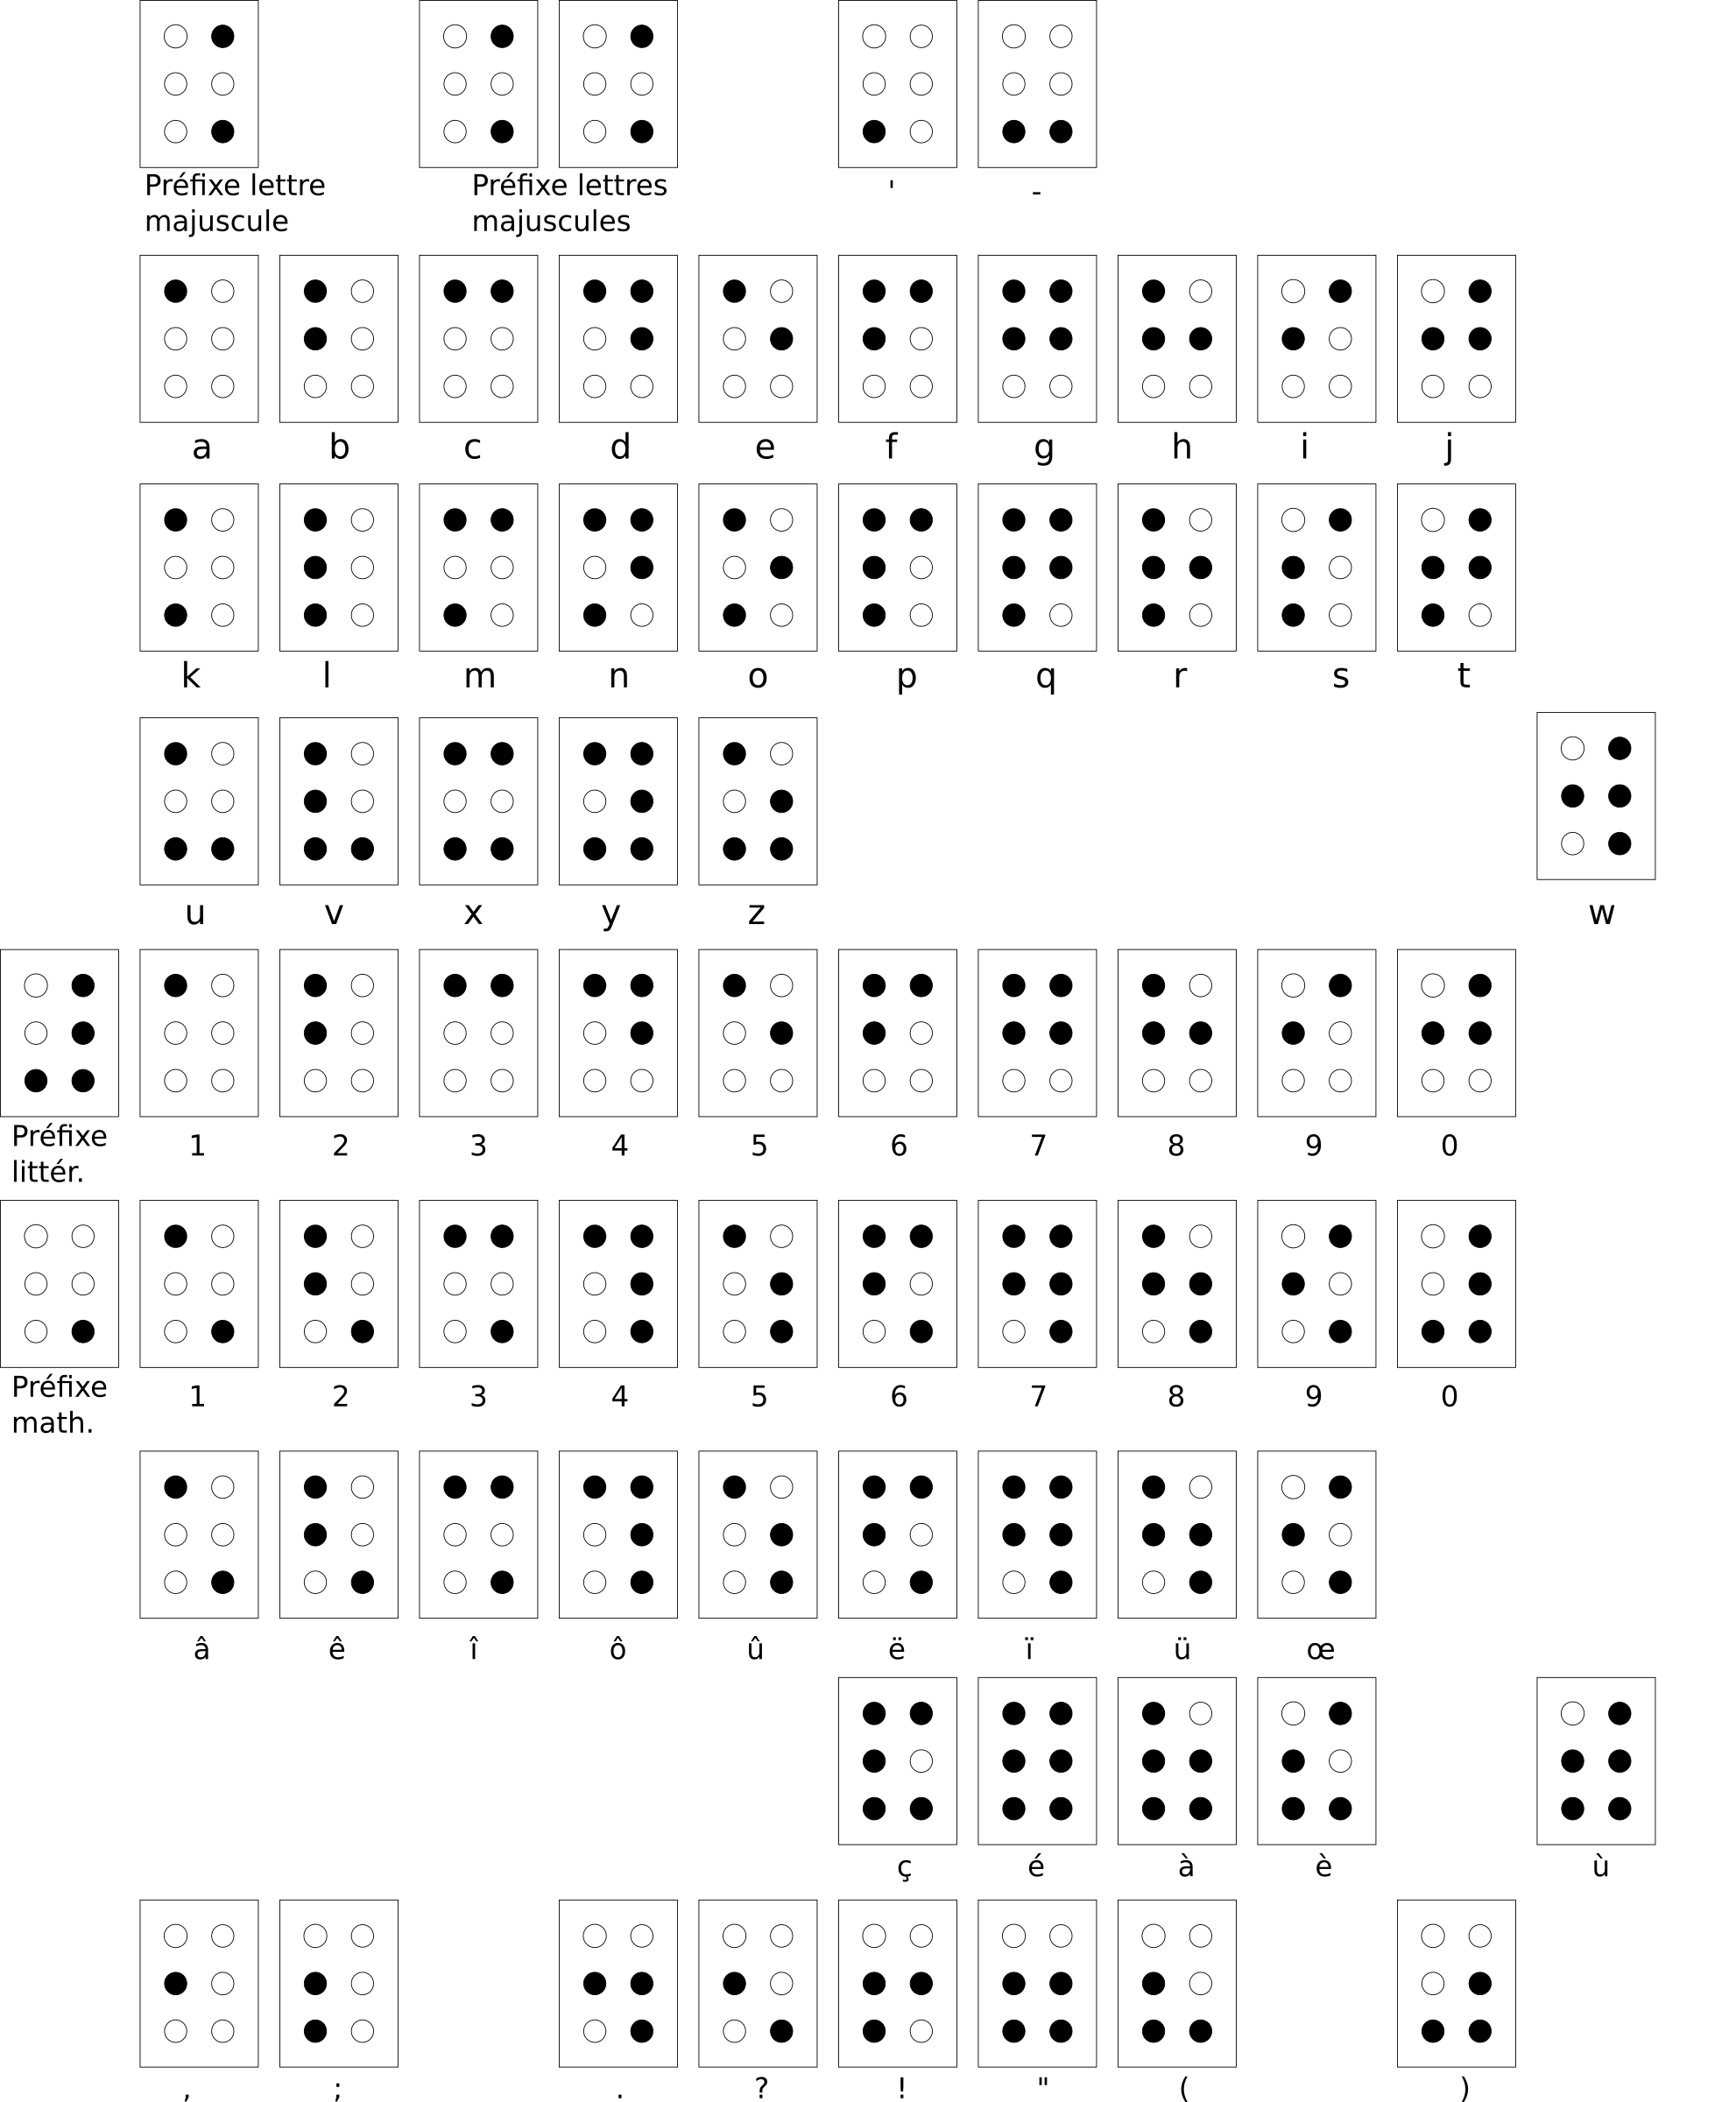 Braille alphabet francais by Cosinus